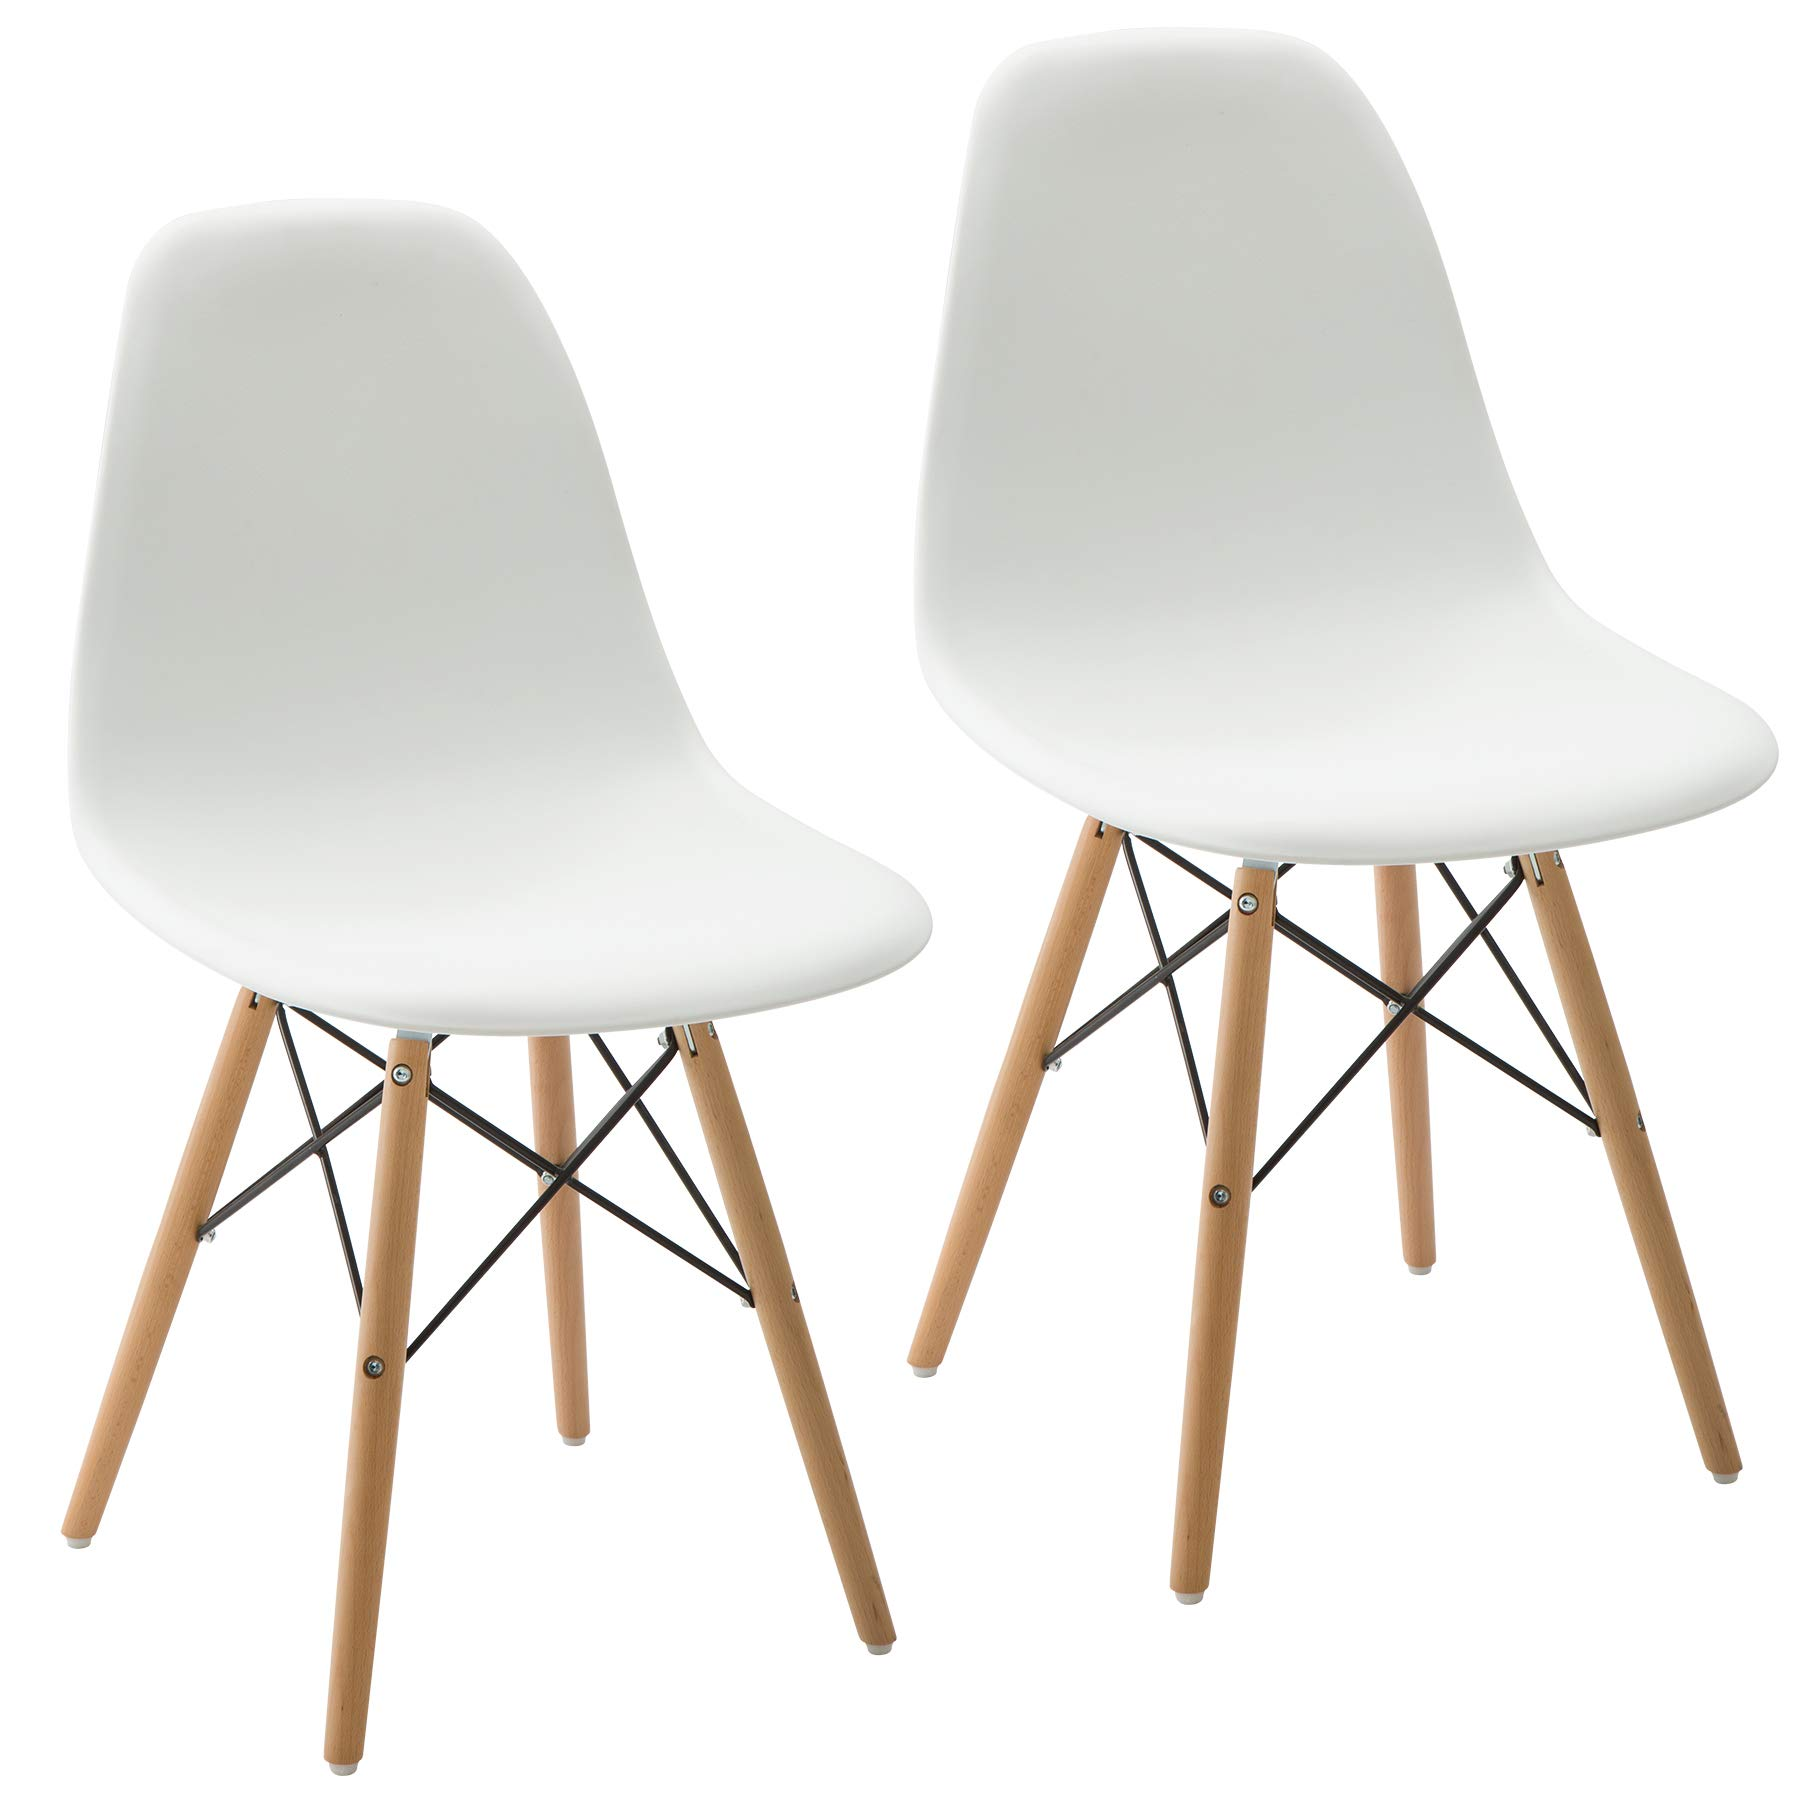 Phoenix Home Kenitra Contemporary Side Chair with Maple-Wood Legs, Snow White, Set of 2 by Phoenix Home